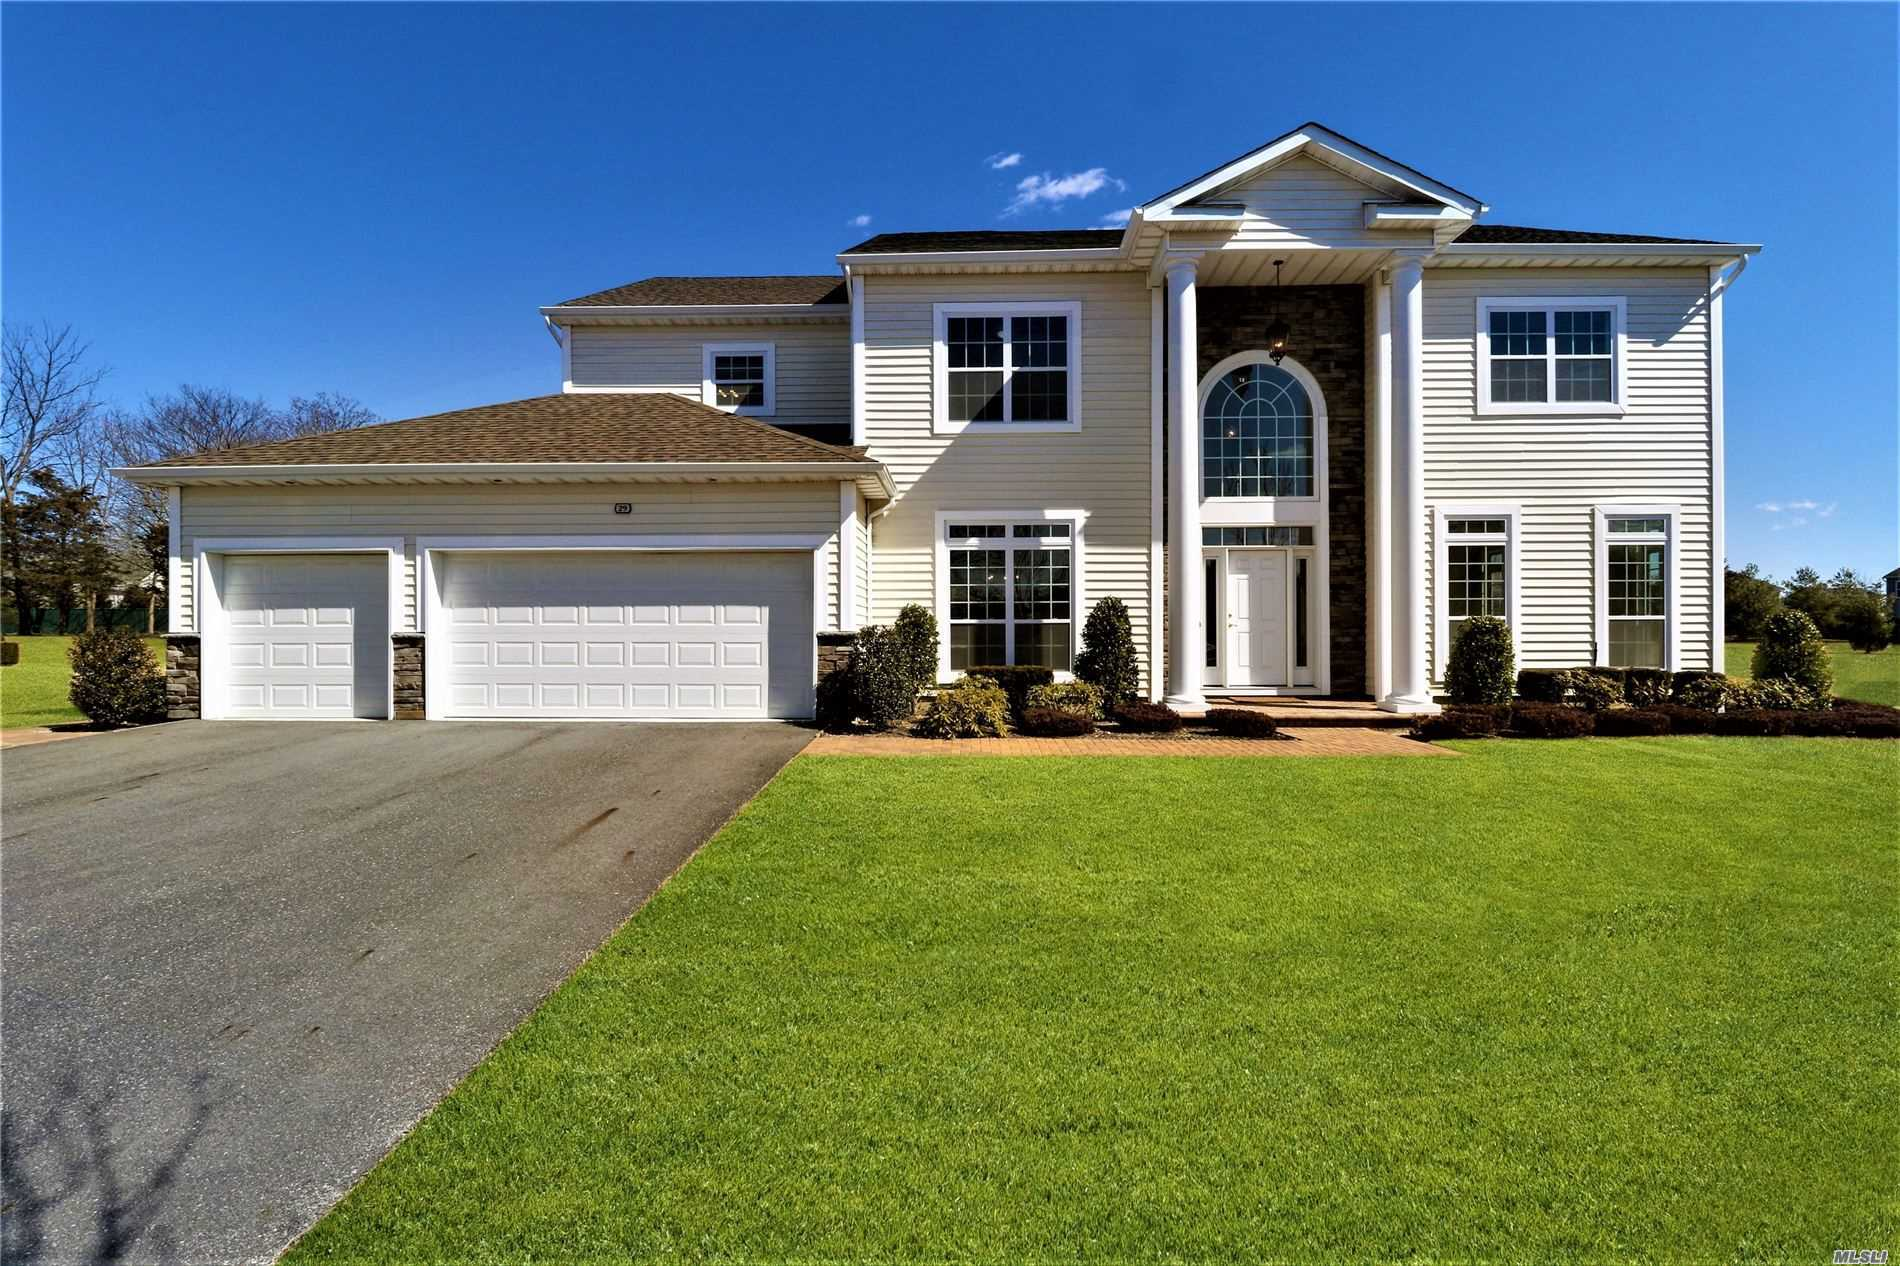 Sophisticated 5 Bed Colonial, Custom Built-In 2018, On Large Property, 0.53 ACRE, 3 Car Garage, 5 Bath, ENERGY STAR Home, In Private Gated Community W/24 Hr Security, Fitness Center, Clubhouse W/Outdoor Pool, Tennis & Basketball Courts, Paddle Boats, Putting Green, Gourmet Kitchen W/ Custom Cabinetry & Granite & Ss Appliances, Family Room W/ Cathedral Ceilings, Master Suite W/Jacuzzi & A 2nd Suite on the 1st Floor, Full Bsmt W/10'Ceilings, Huge Backyard W/ Paved Patio & Walkways, Smithtown Schools!